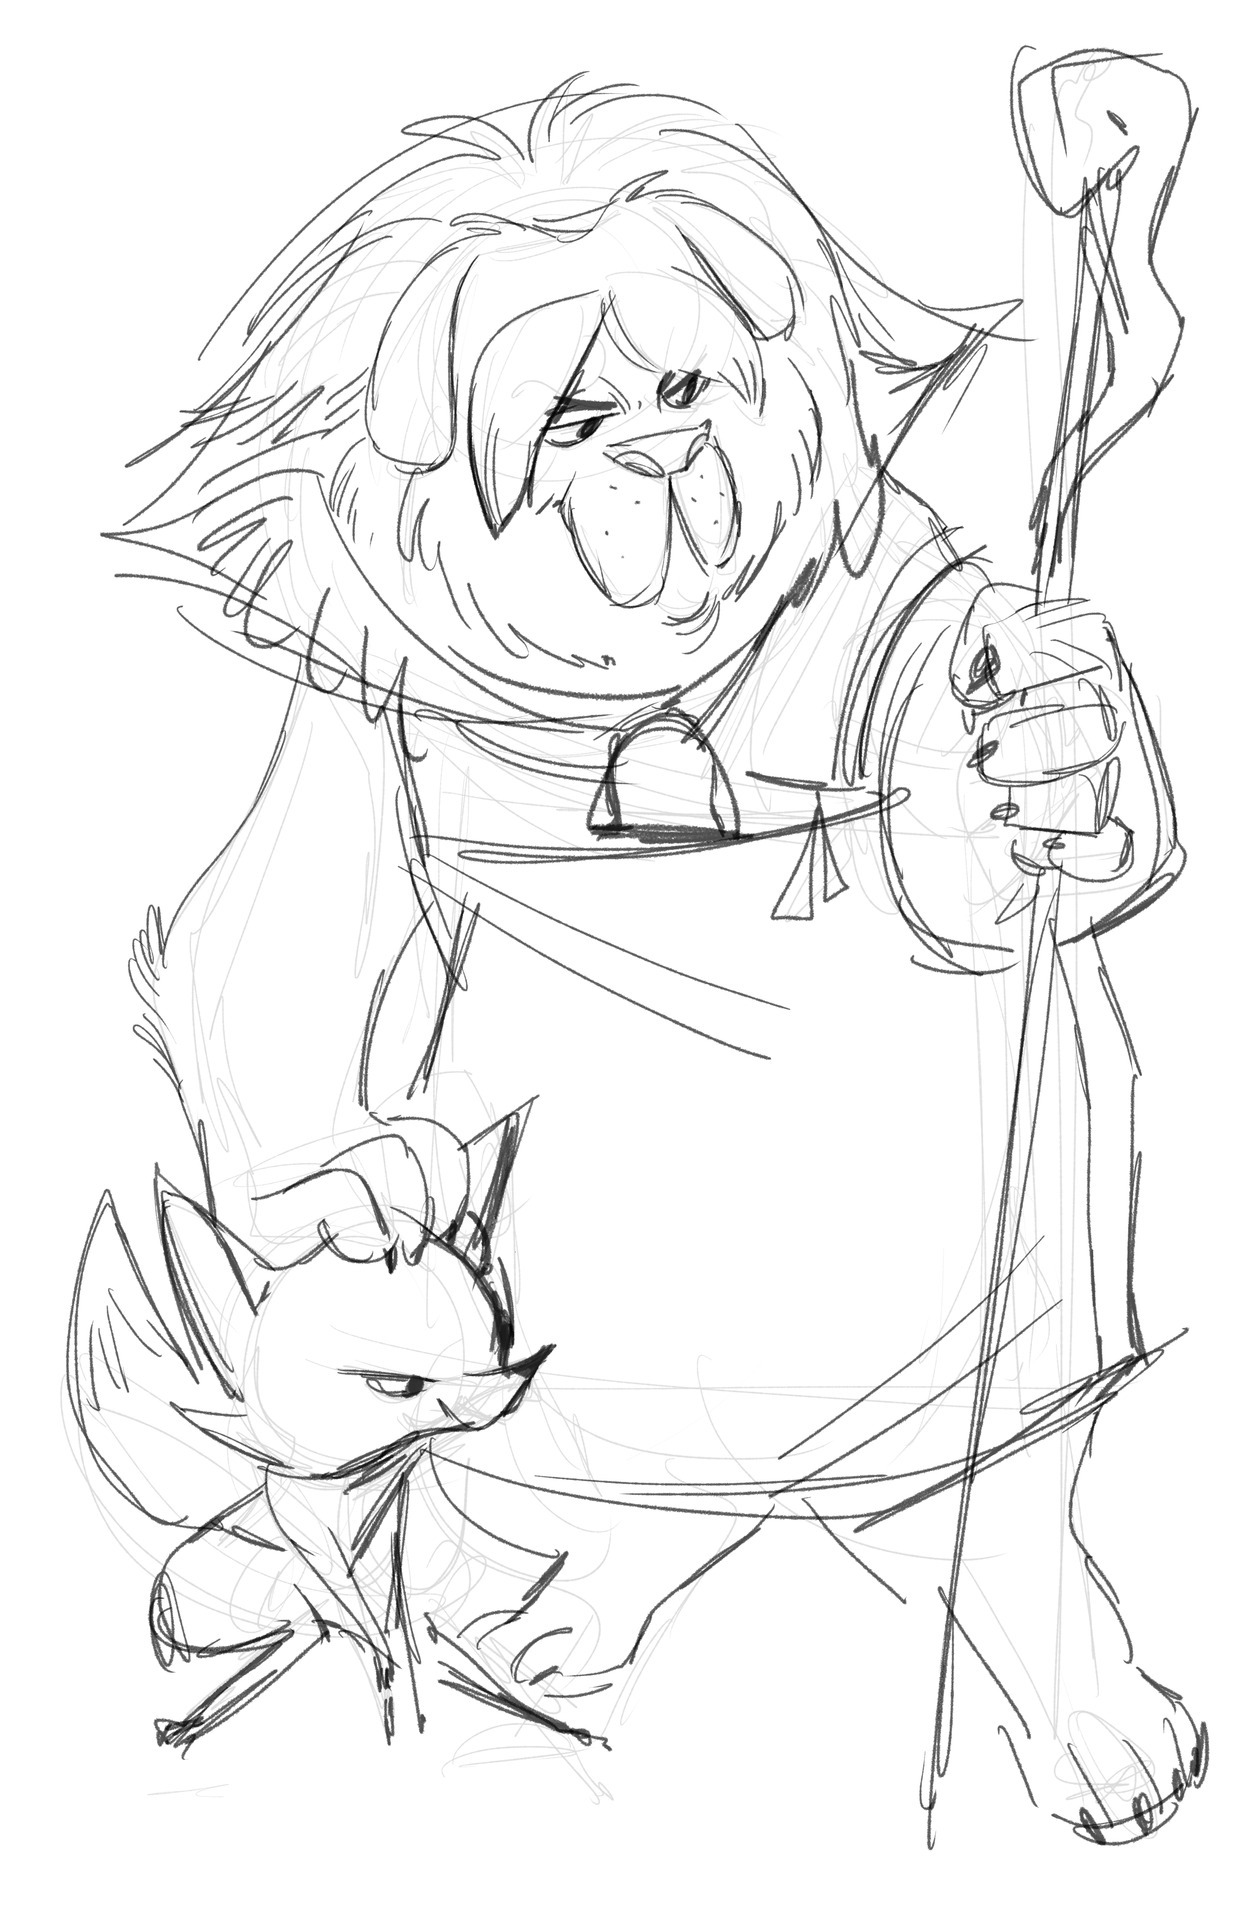 The Mastiff and Arctic Fox, two characters who are the allegories for the Wolf and the Cat in the original Pinocchio story!